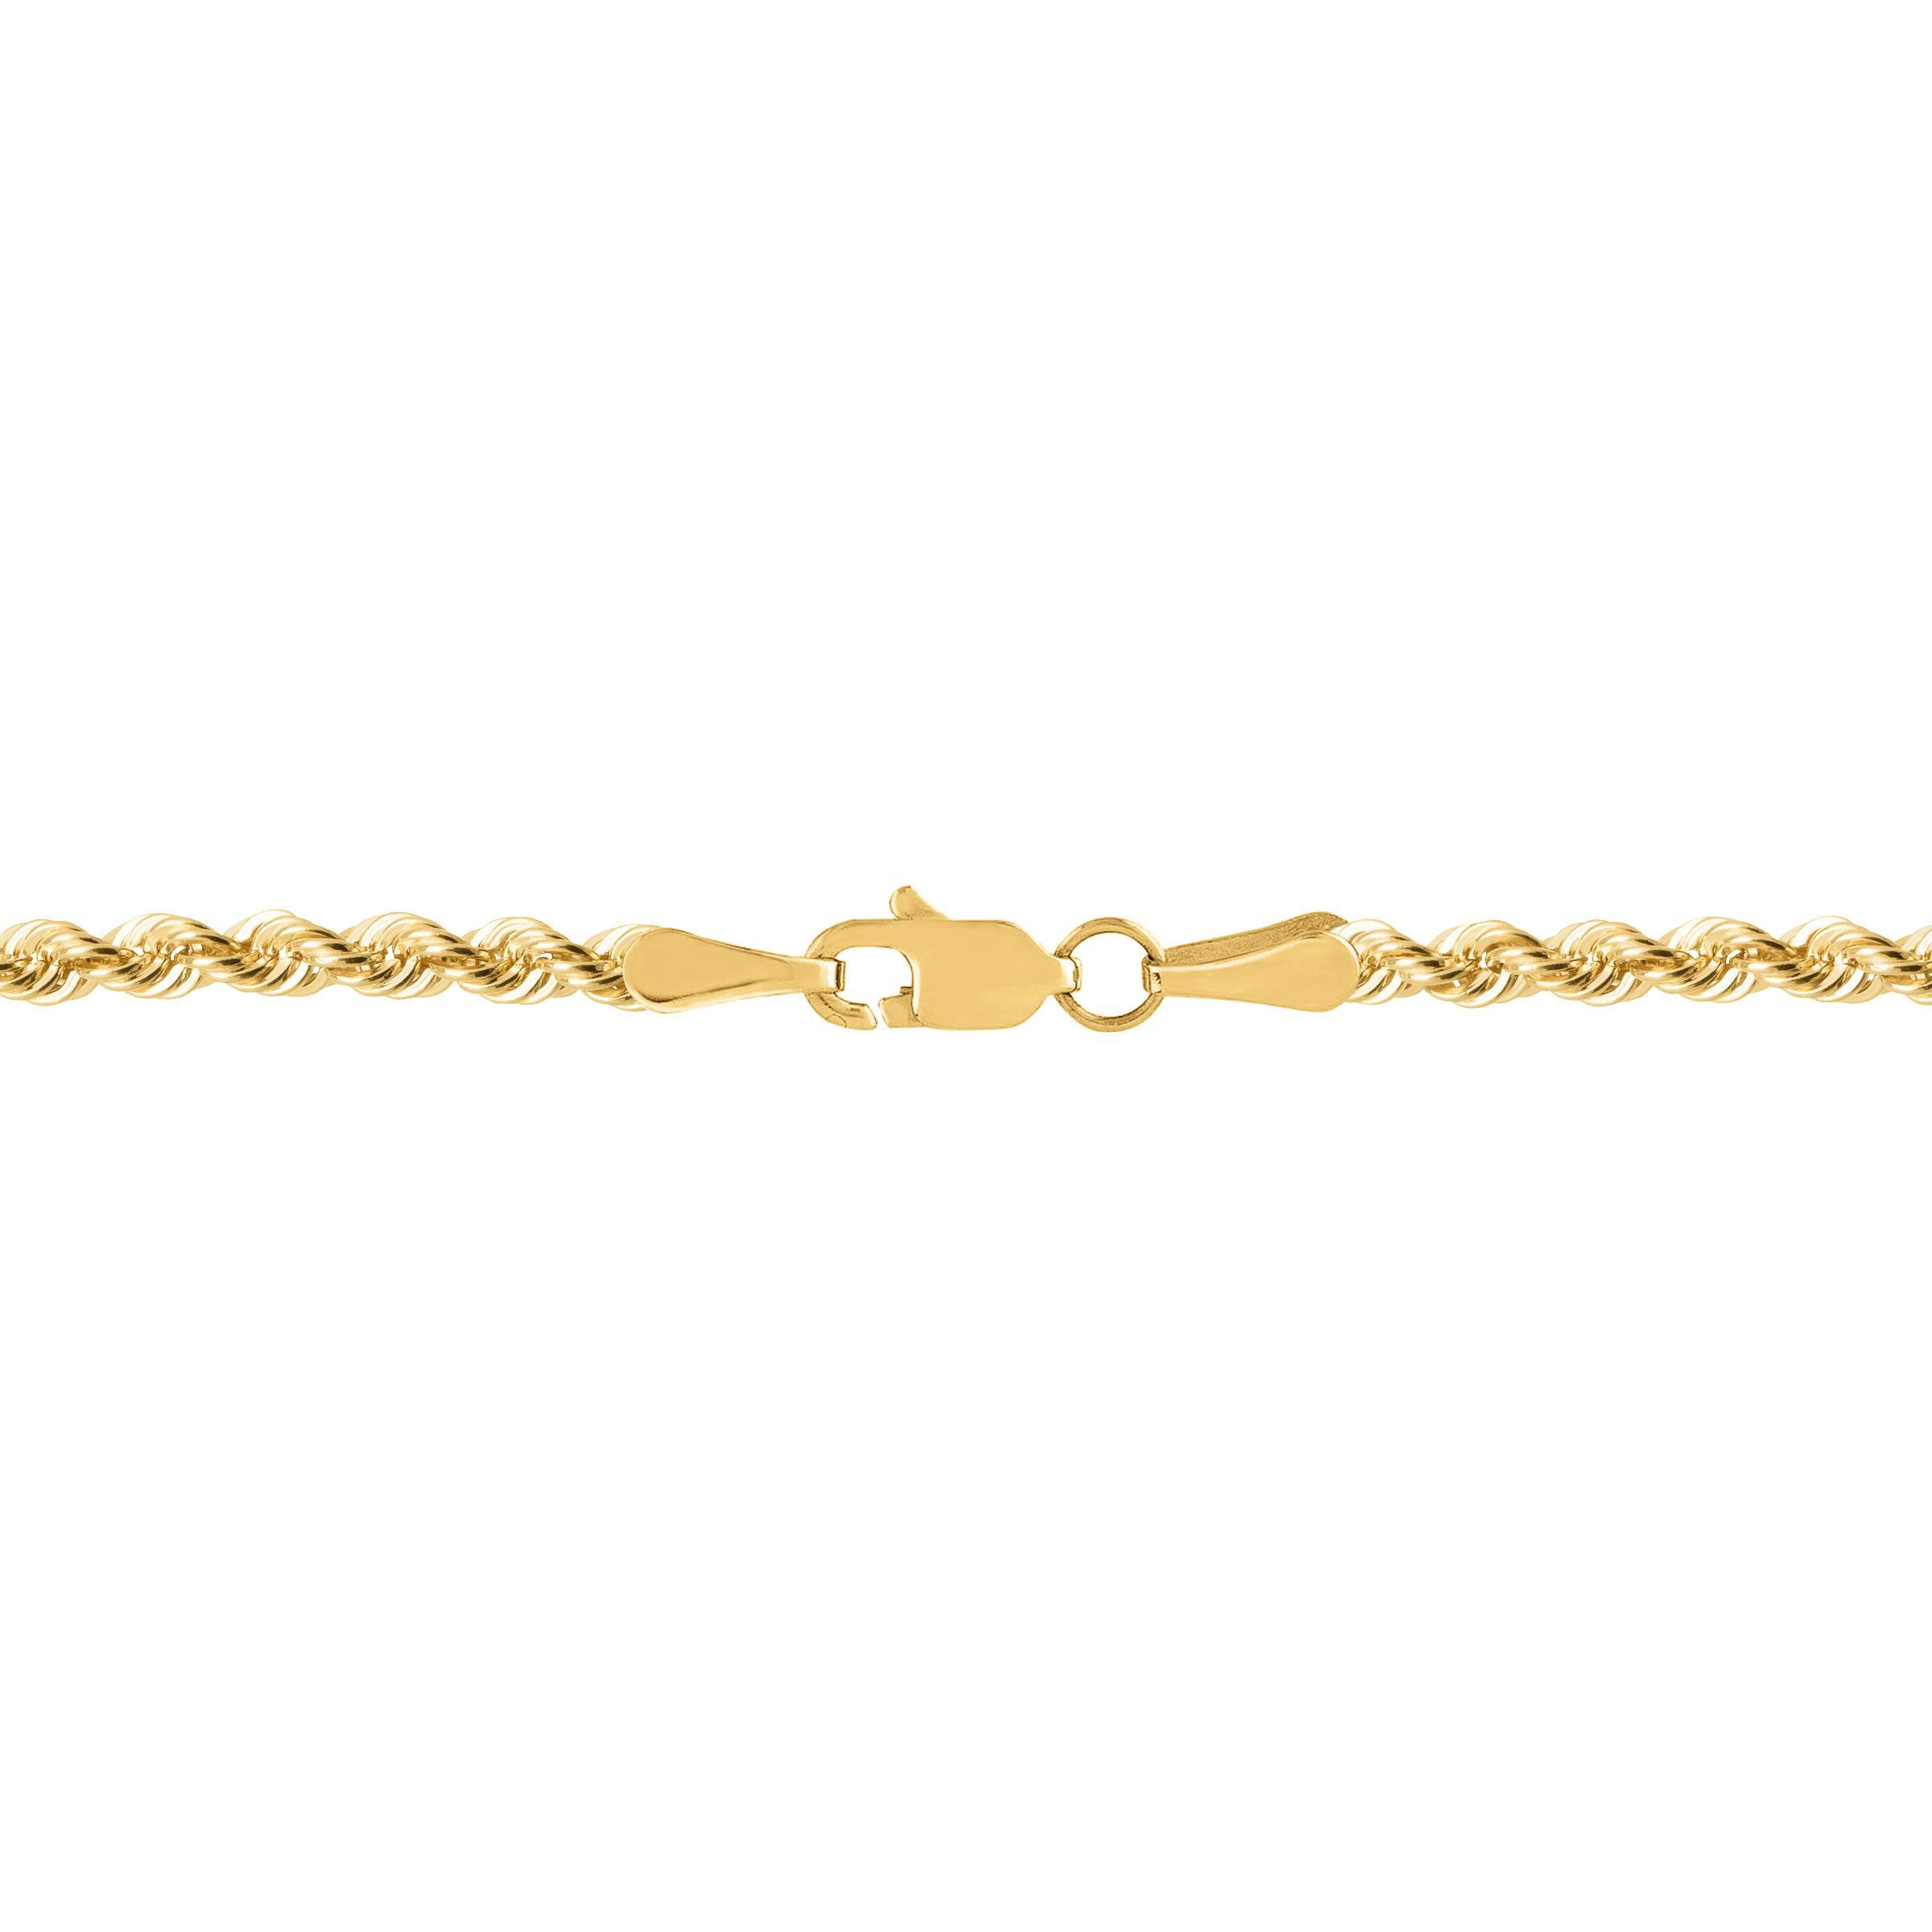 59c8996da9f2c Details about Eternity Gold 20-Inch French Rope Chain Necklace in 14K Gold